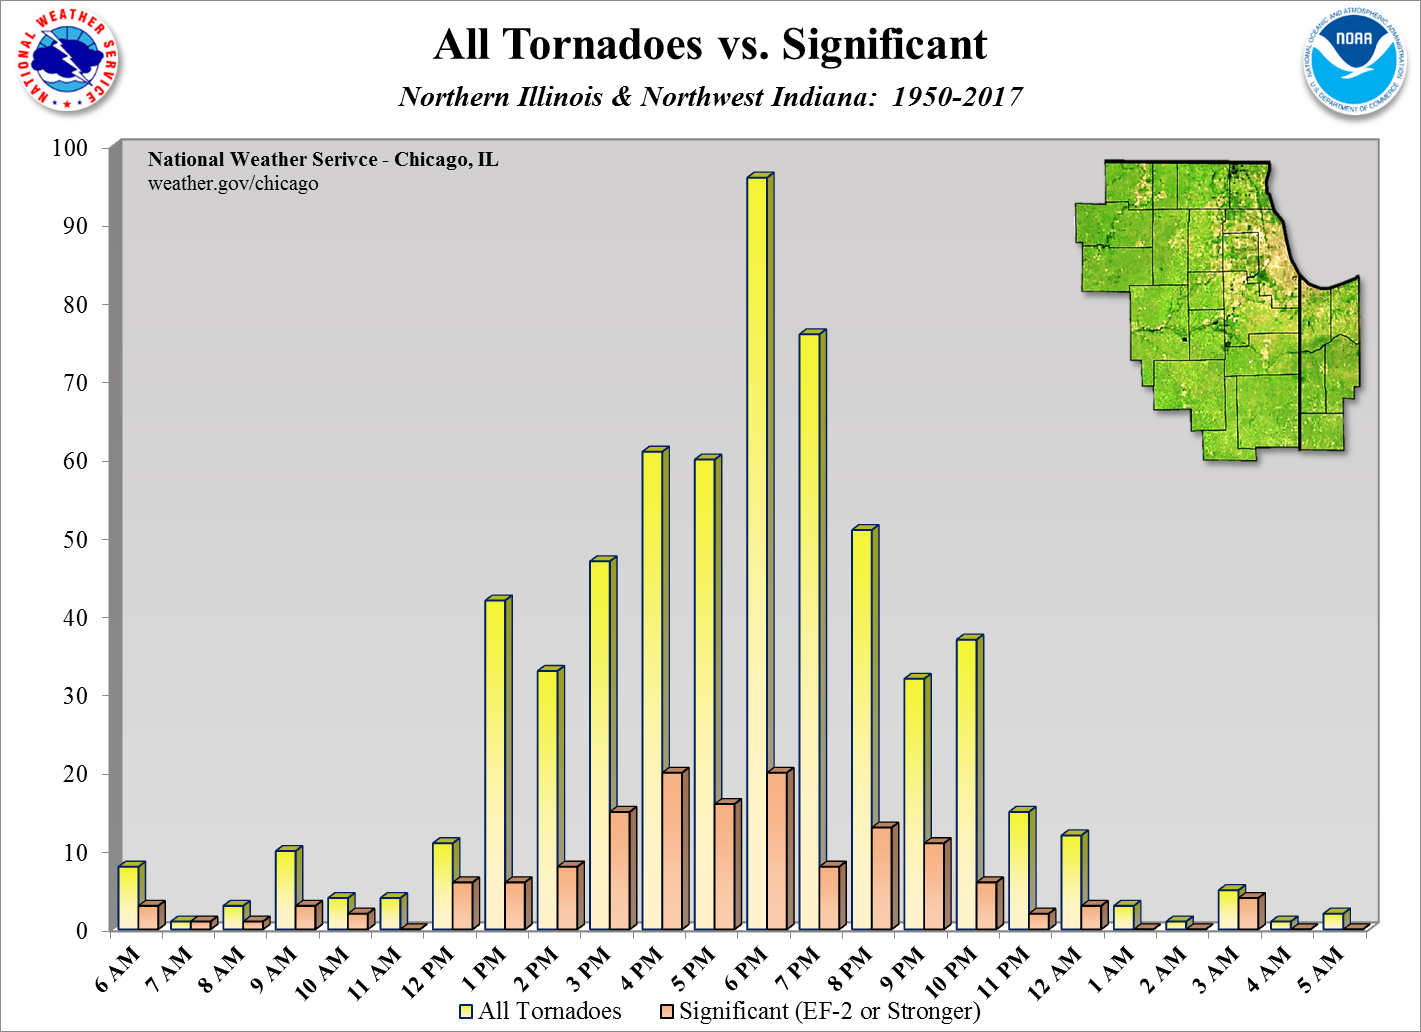 Tornadoes & Significant by Time of Day